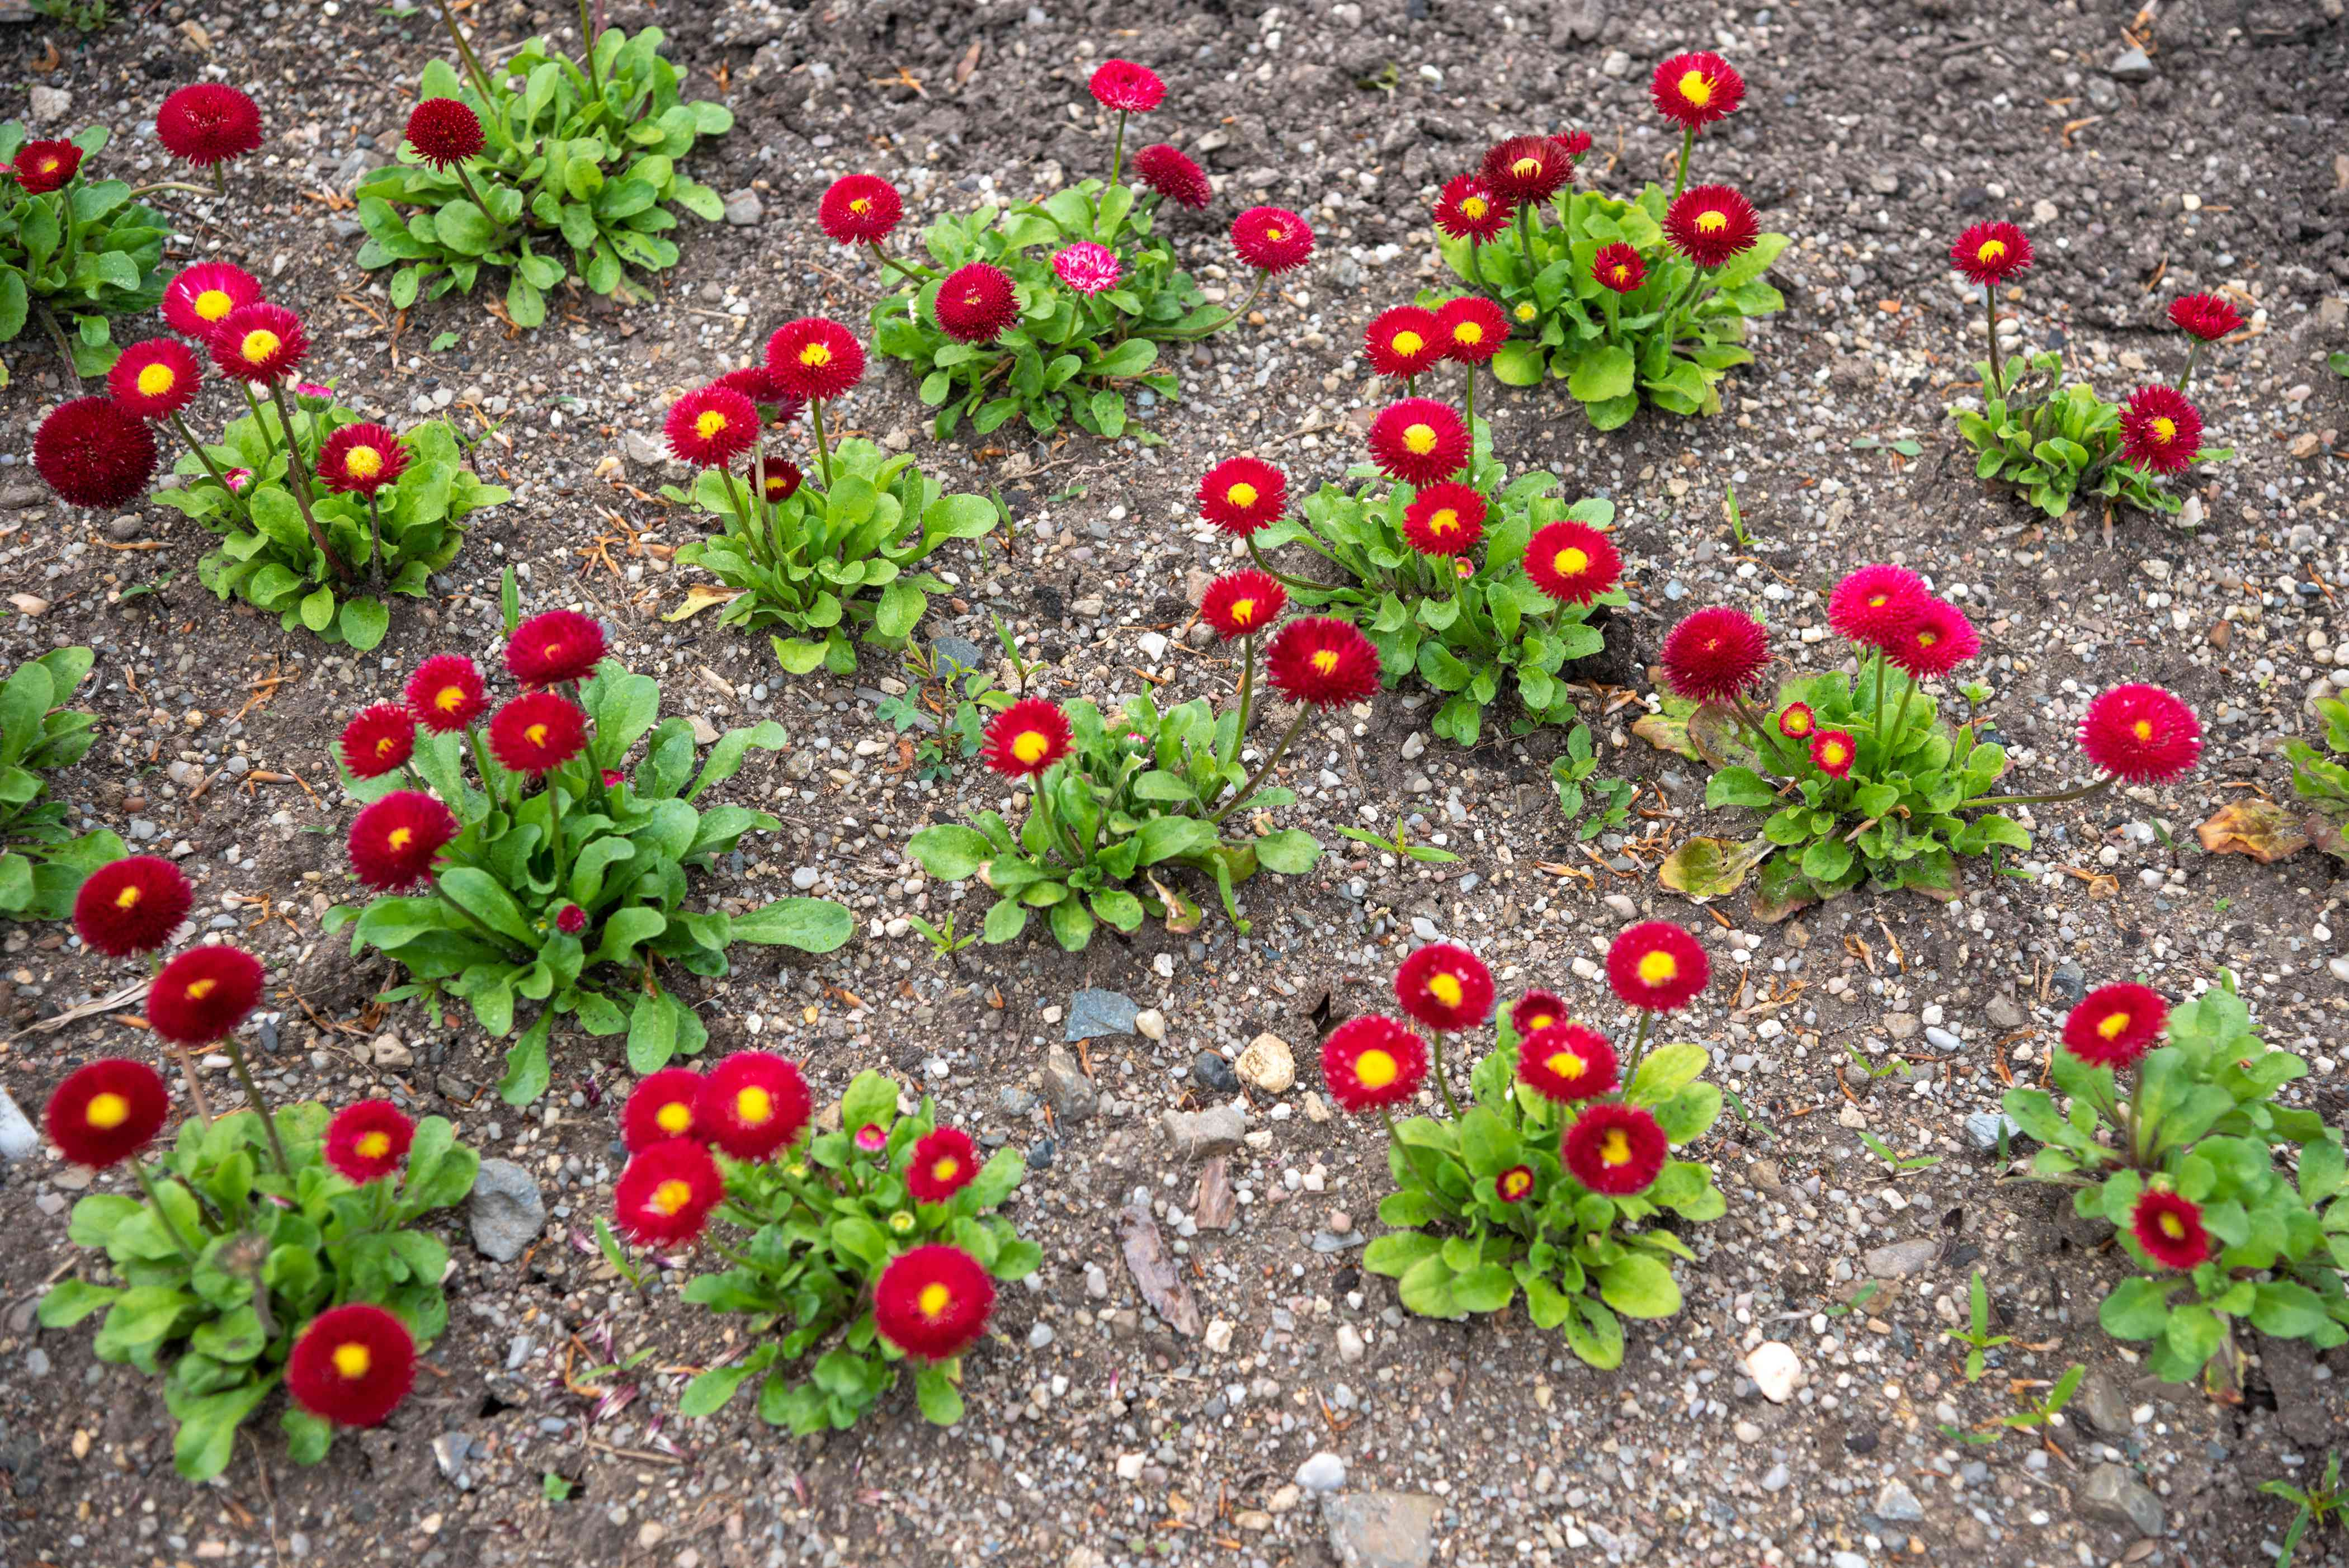 English daisy flowers with red ray petals surrounding yellow centers in gravel ground